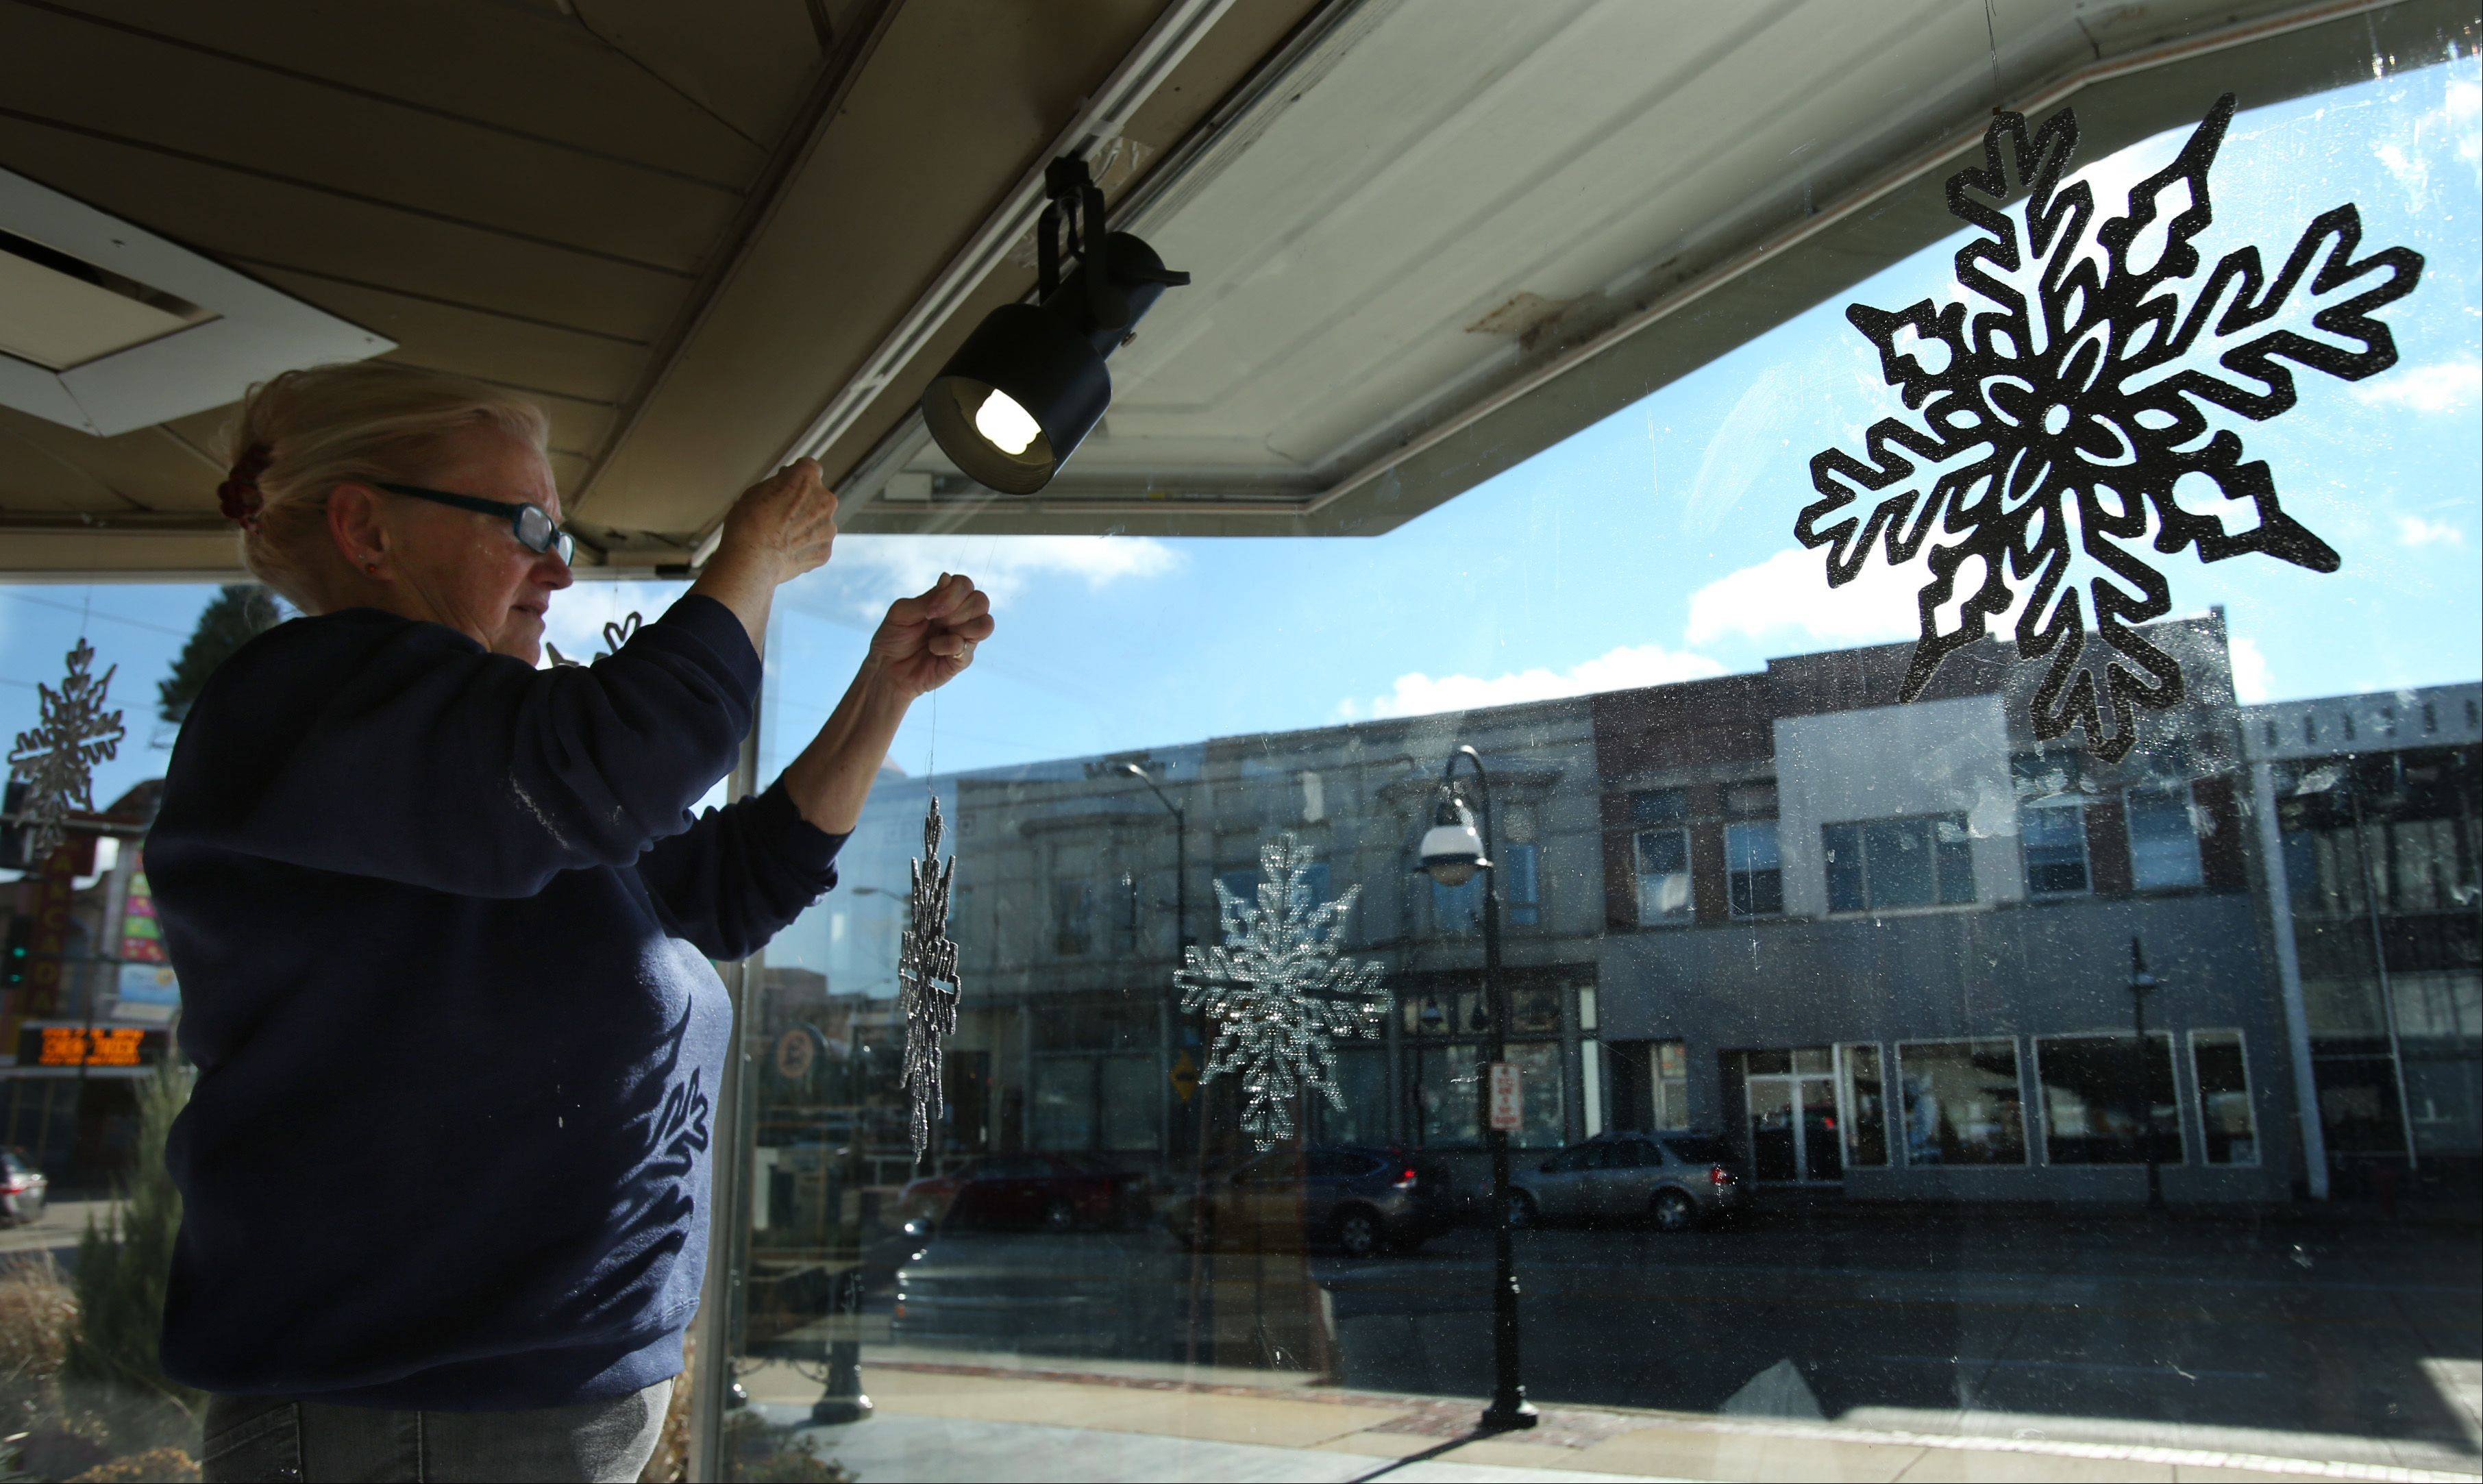 Volunteer Janet Wilson of St. Charles puts up decorations as she and fellow volunteer Darlene Riebe install a Christmas display Monday morning in the large window on the south side of the St. Charles Municipal Center.